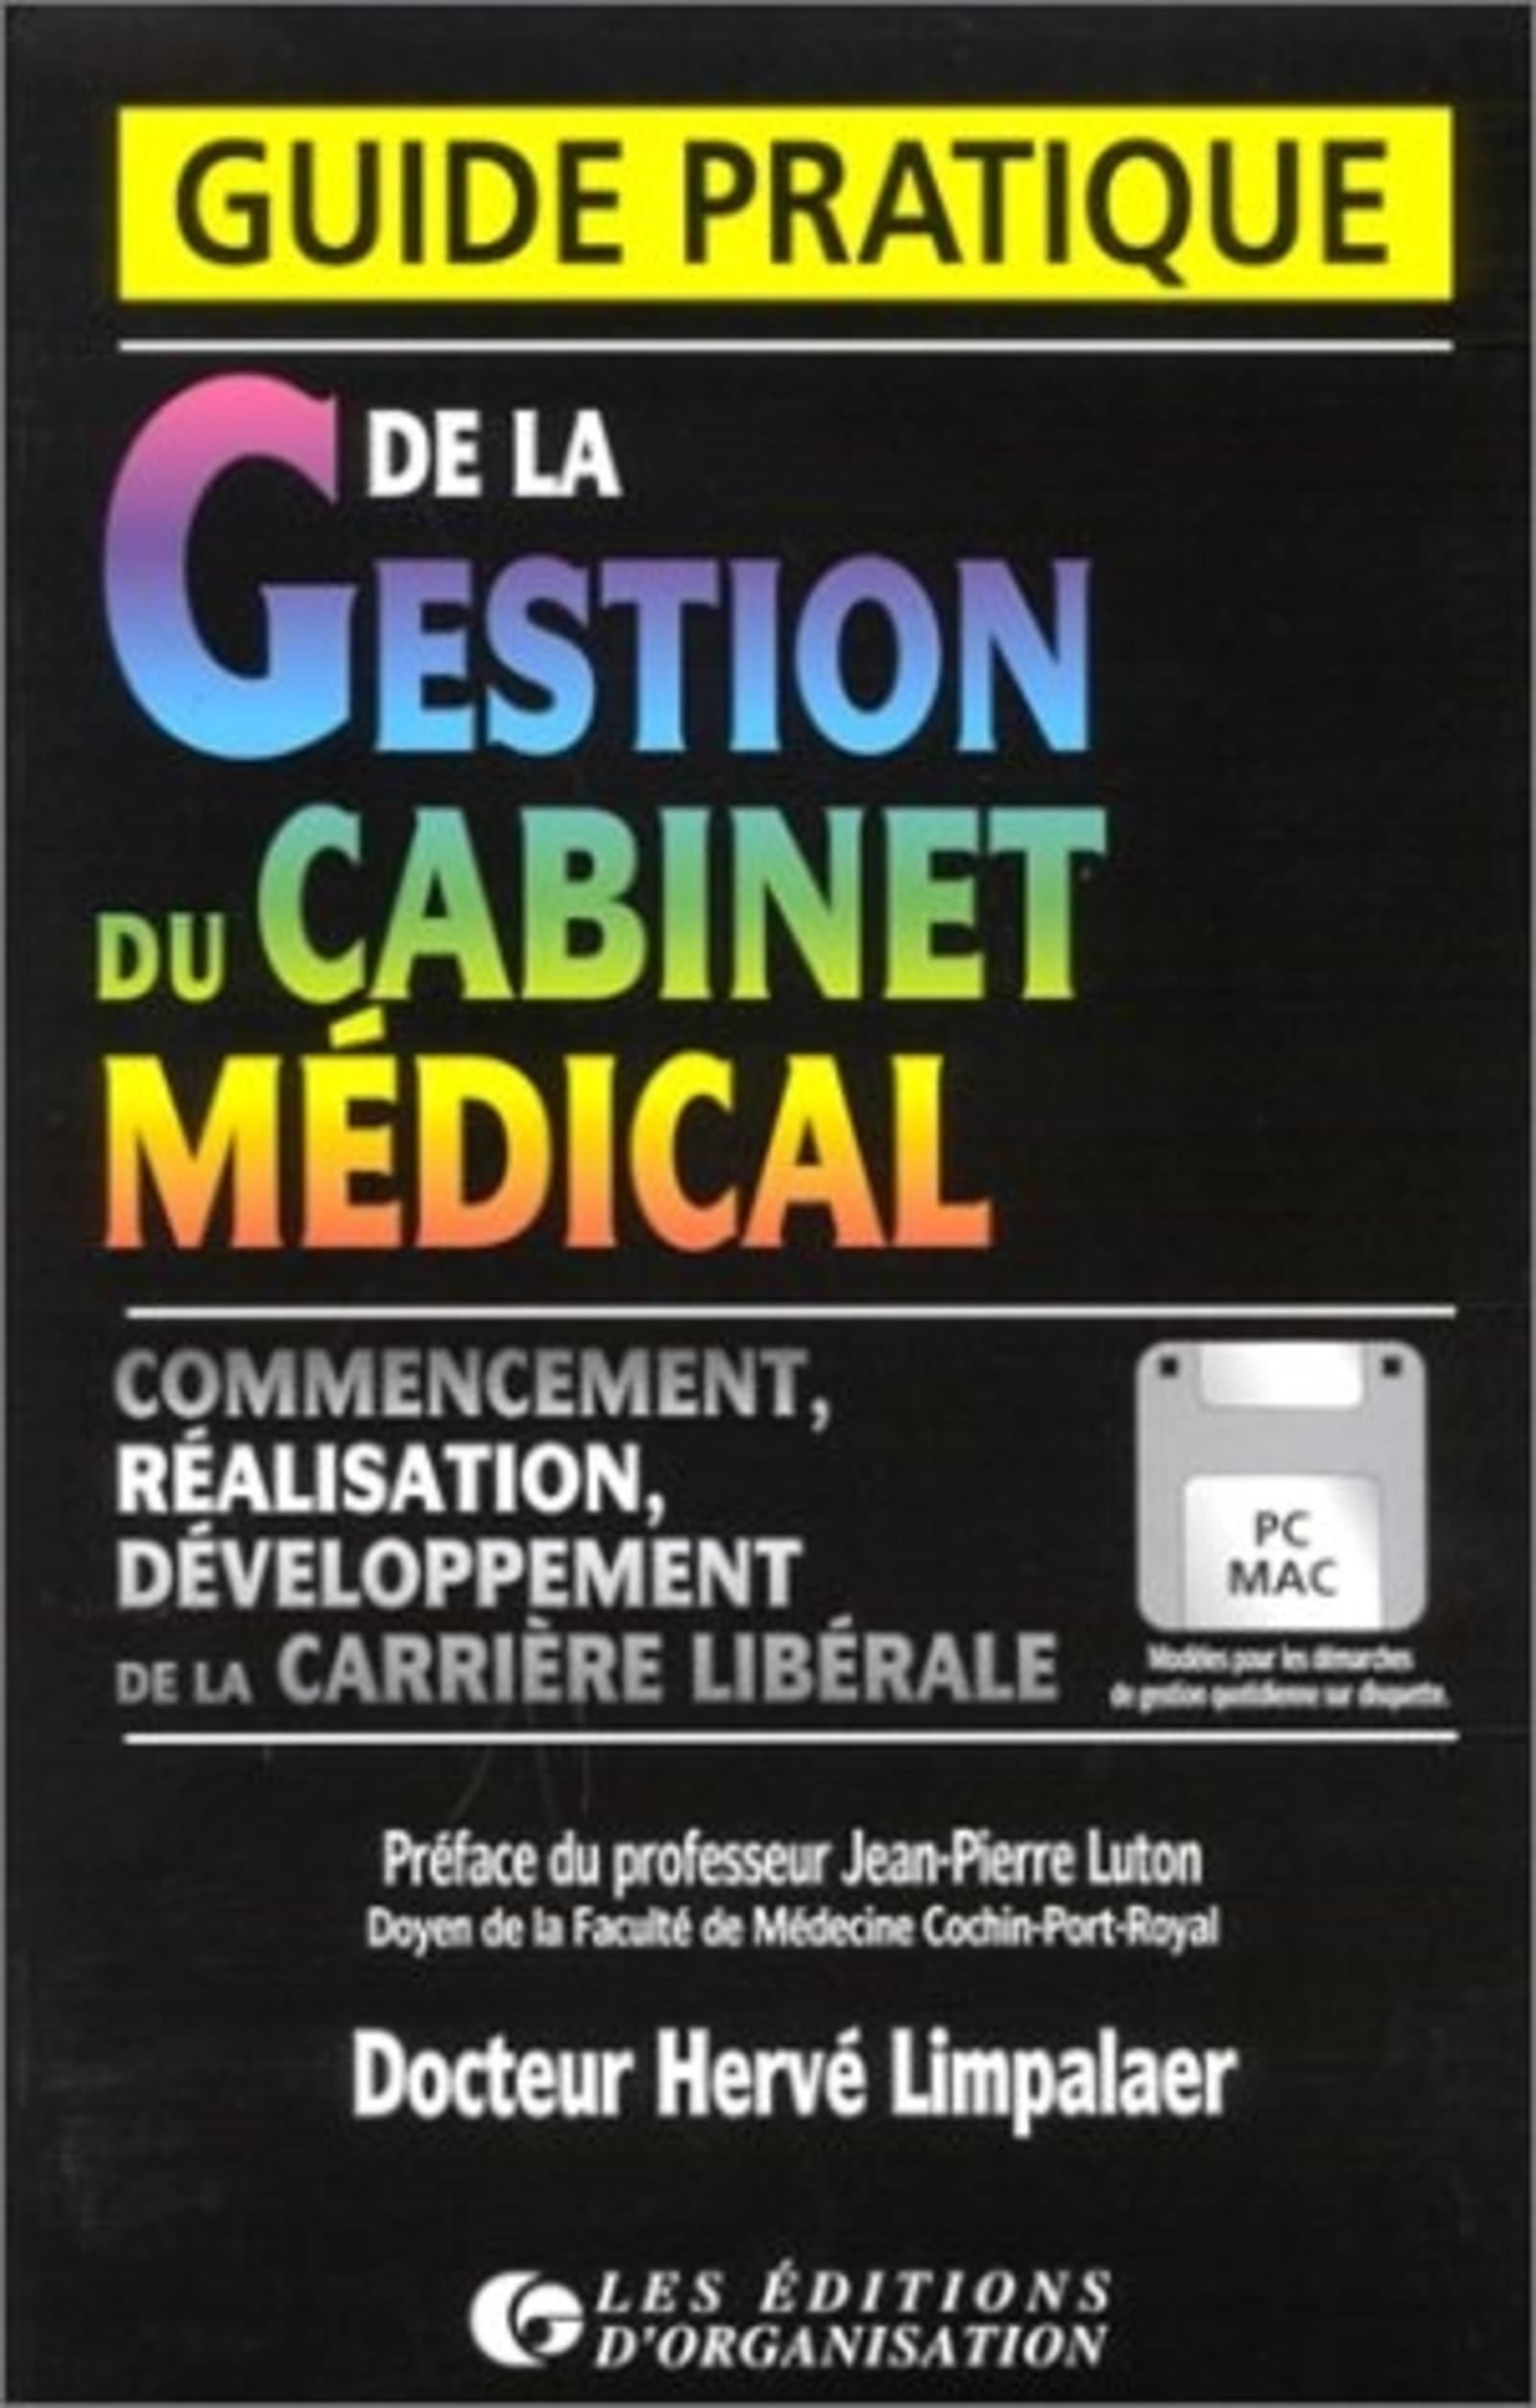 GUIDE PRATIQUE DE GESTION CABINET MEDICAL